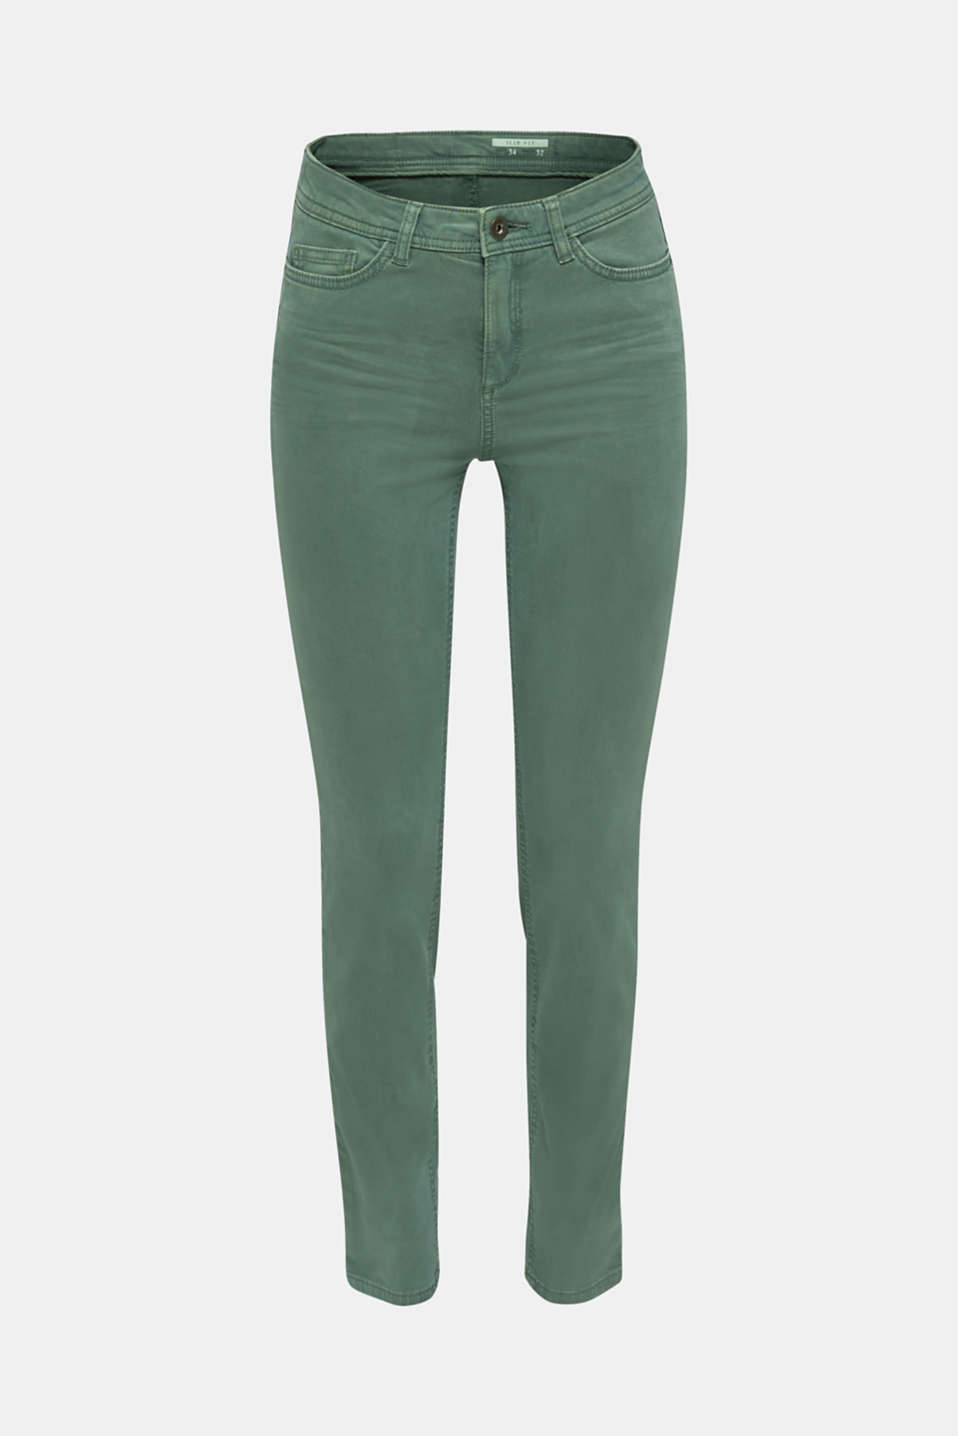 Washed-effect stretch trousers, KHAKI GREEN, detail image number 7